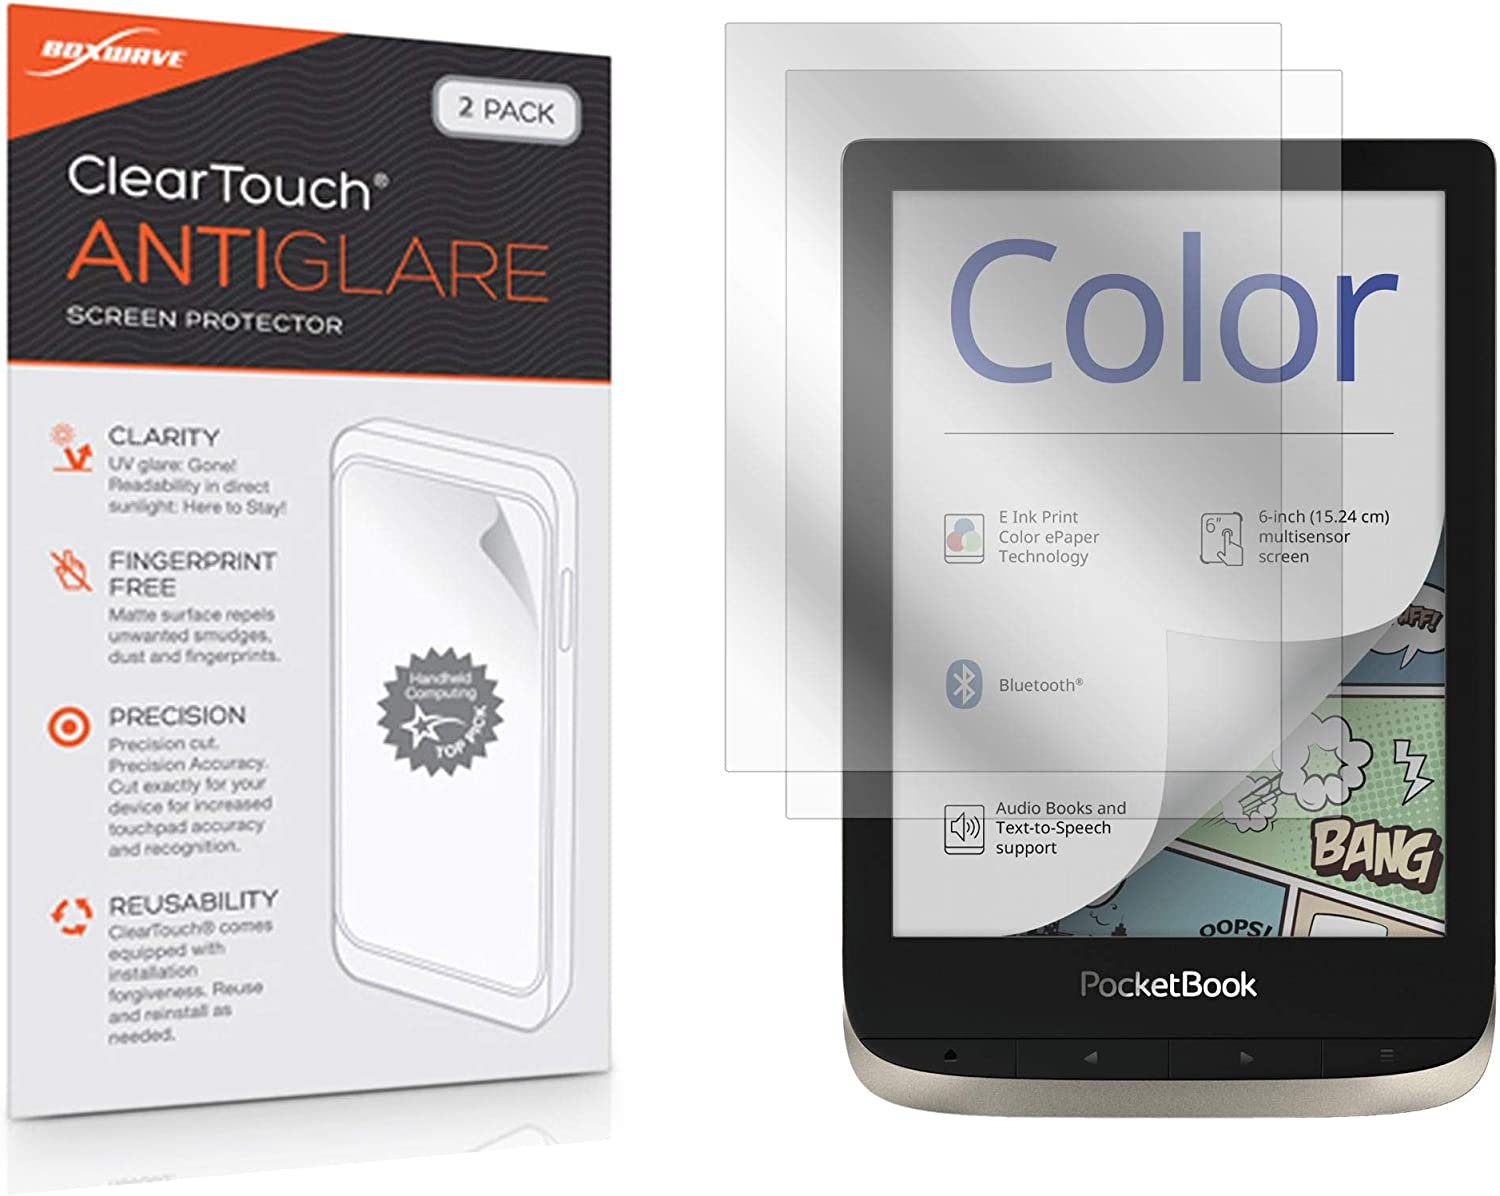 Pocketbook Color e-Reader Screen Protector, BoxWave [ClearTouch Anti-Glare (2-Pack)] Anti-Fingerprint Matte Film Skin for Pocketbook Color e-Reader